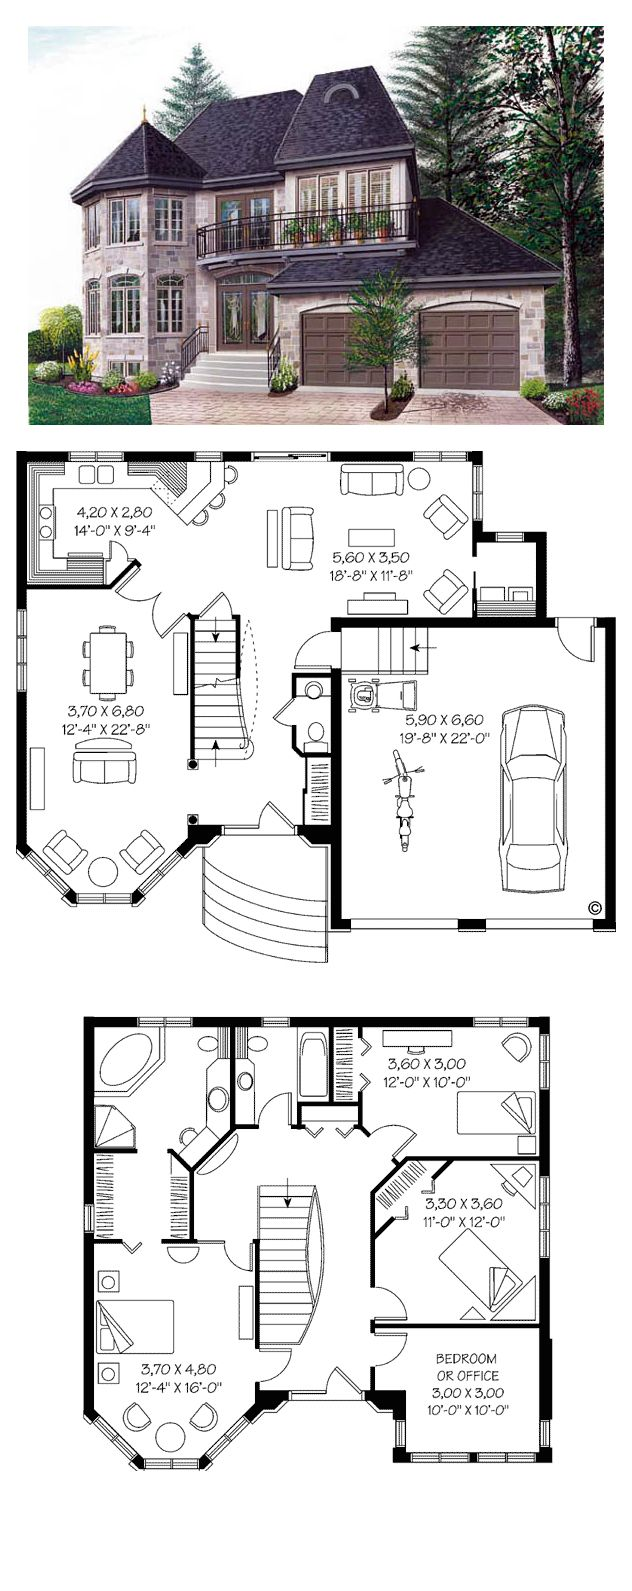 197 best floor plans images on pinterest small houses house floor